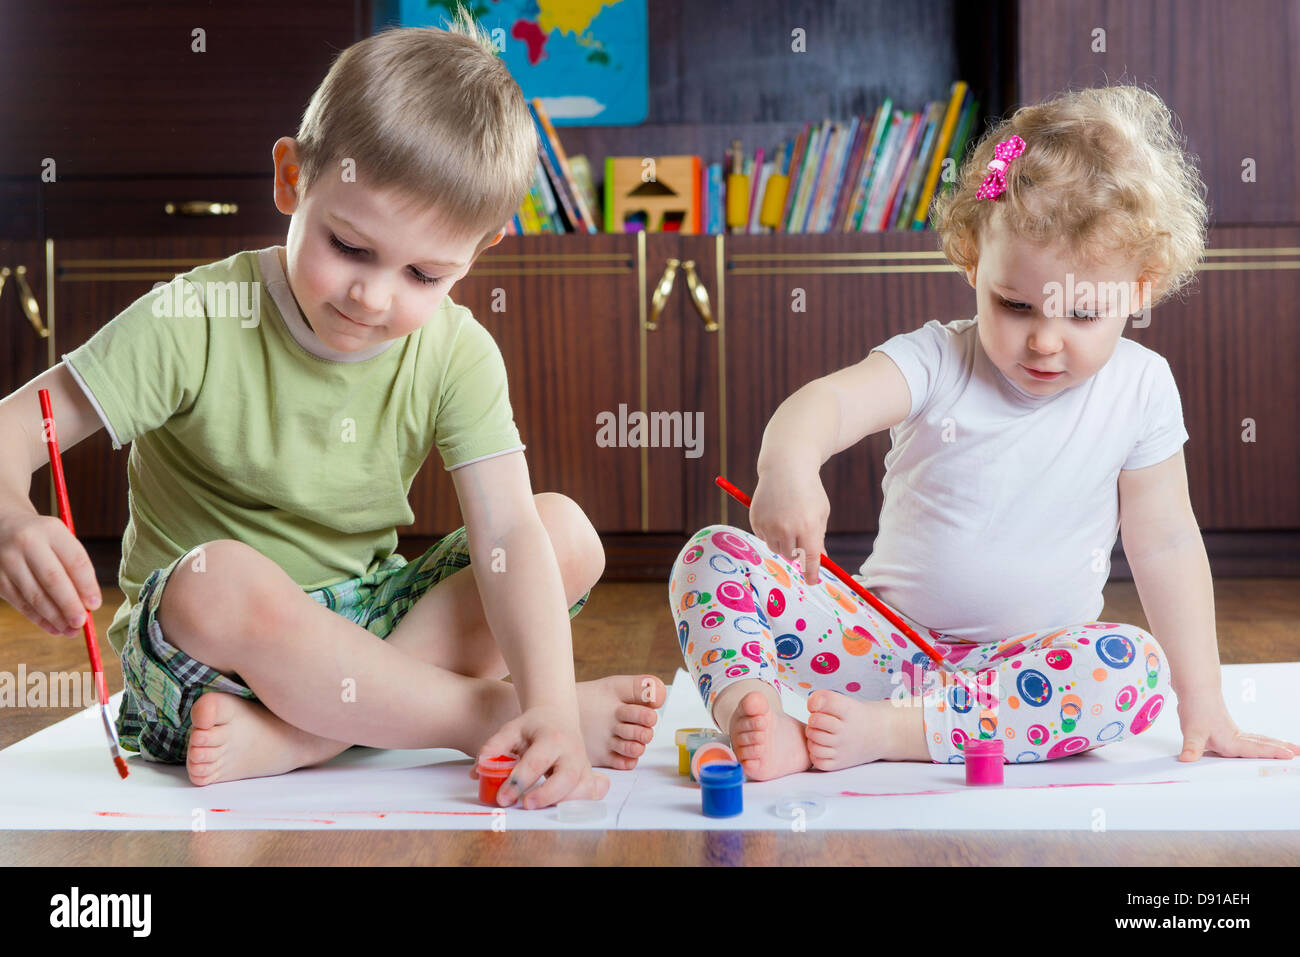 Cute Brother And Sister Painting With Colorful Paints Stock Photo